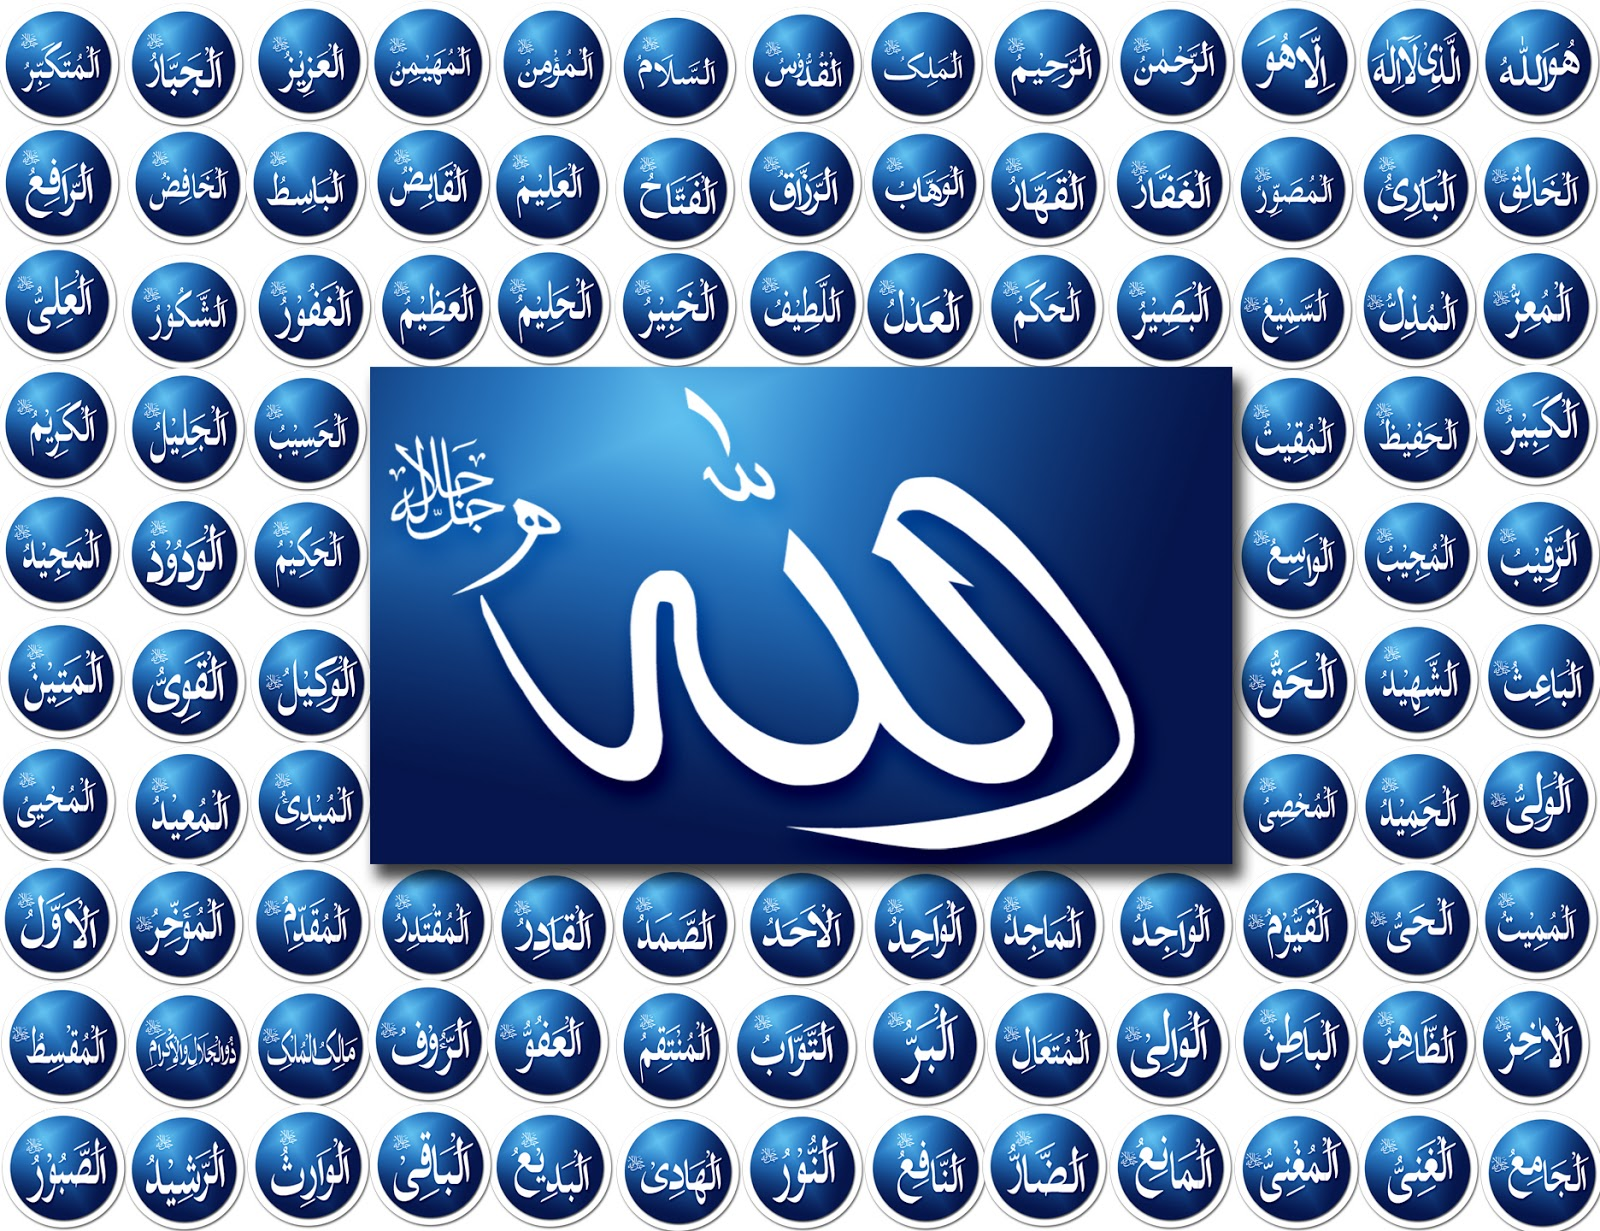 99 names of allah stock vector. Illustration of arabic 47956613.